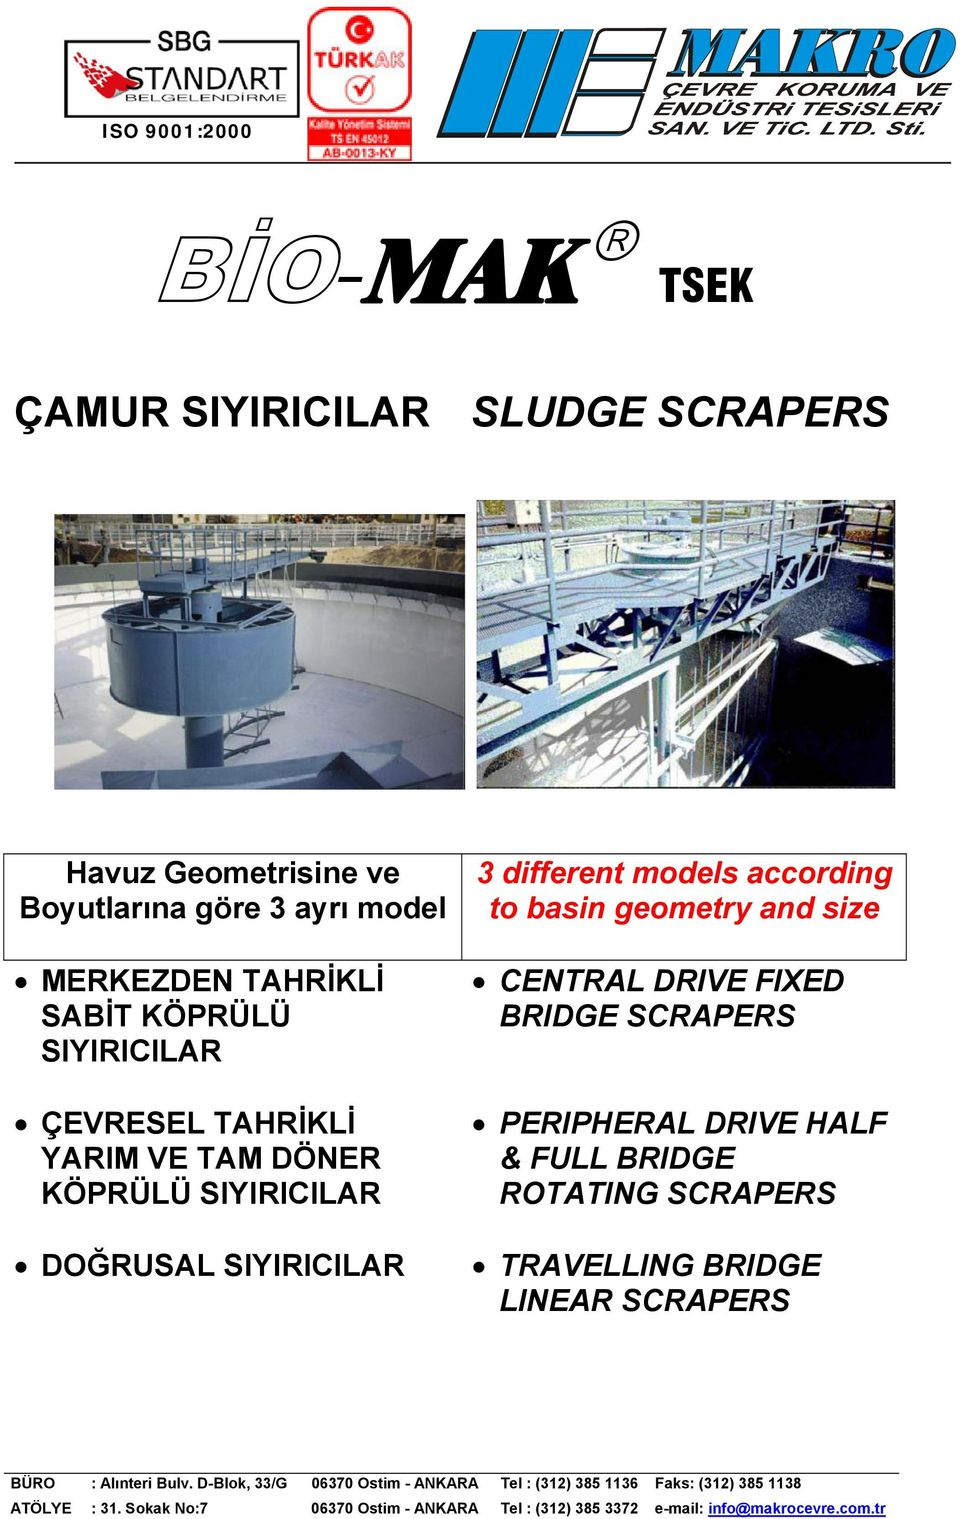 SIYIRICILAR DOĞRUSAL SIYIRICILAR 3 different models according to basin geometry and size CENTRAL